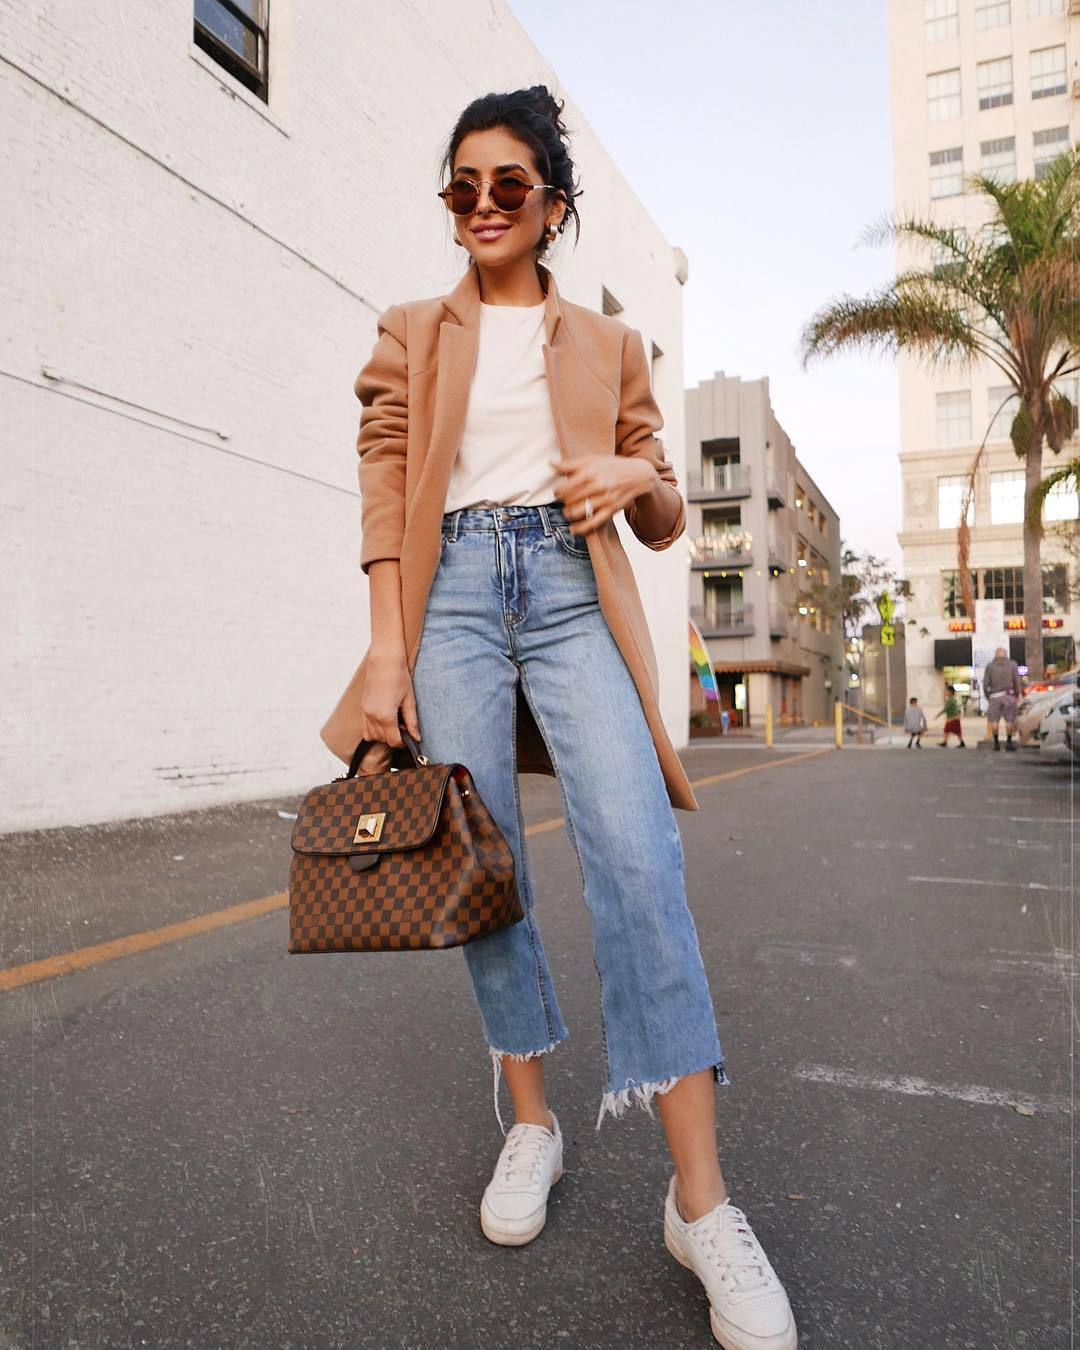 jeans ripped jeans cropped jeans white sneakers handbag louis vuitton coat white t-shirt